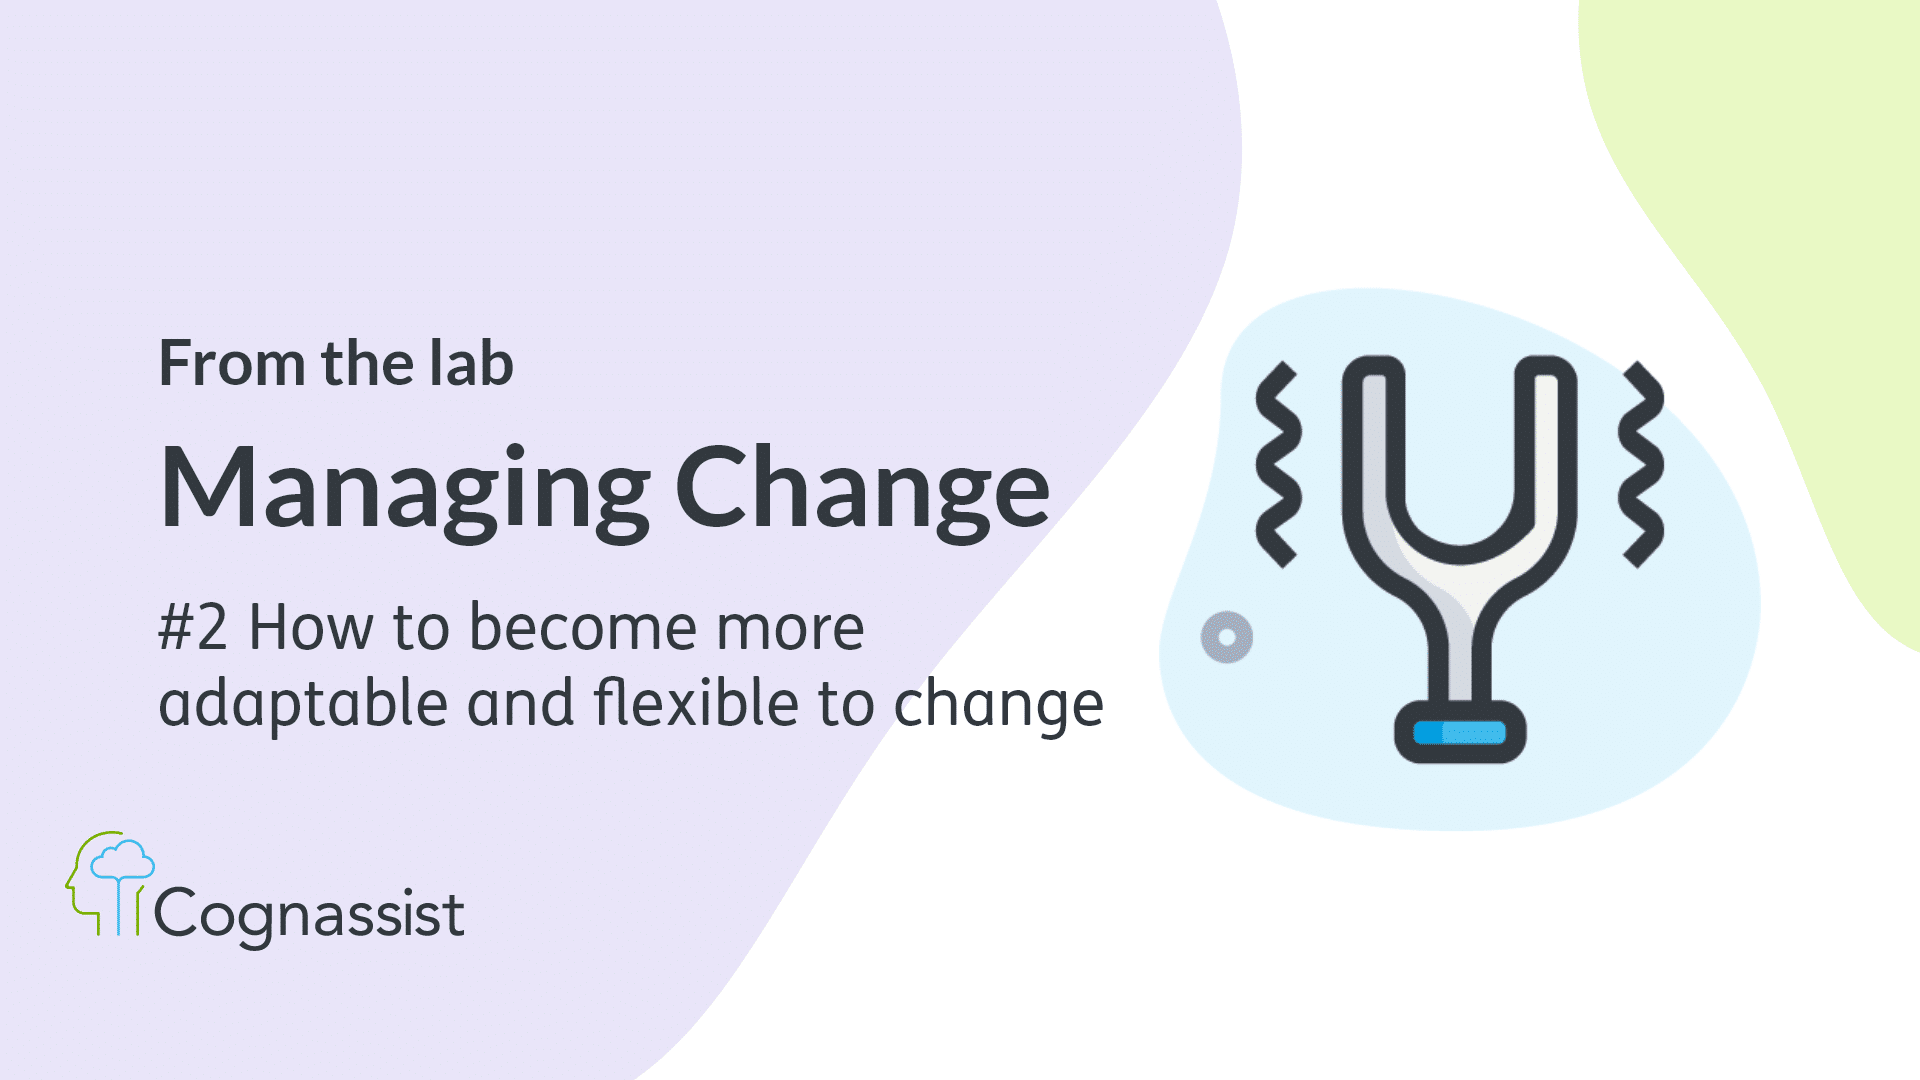 How to become more adaptable and flexible to change